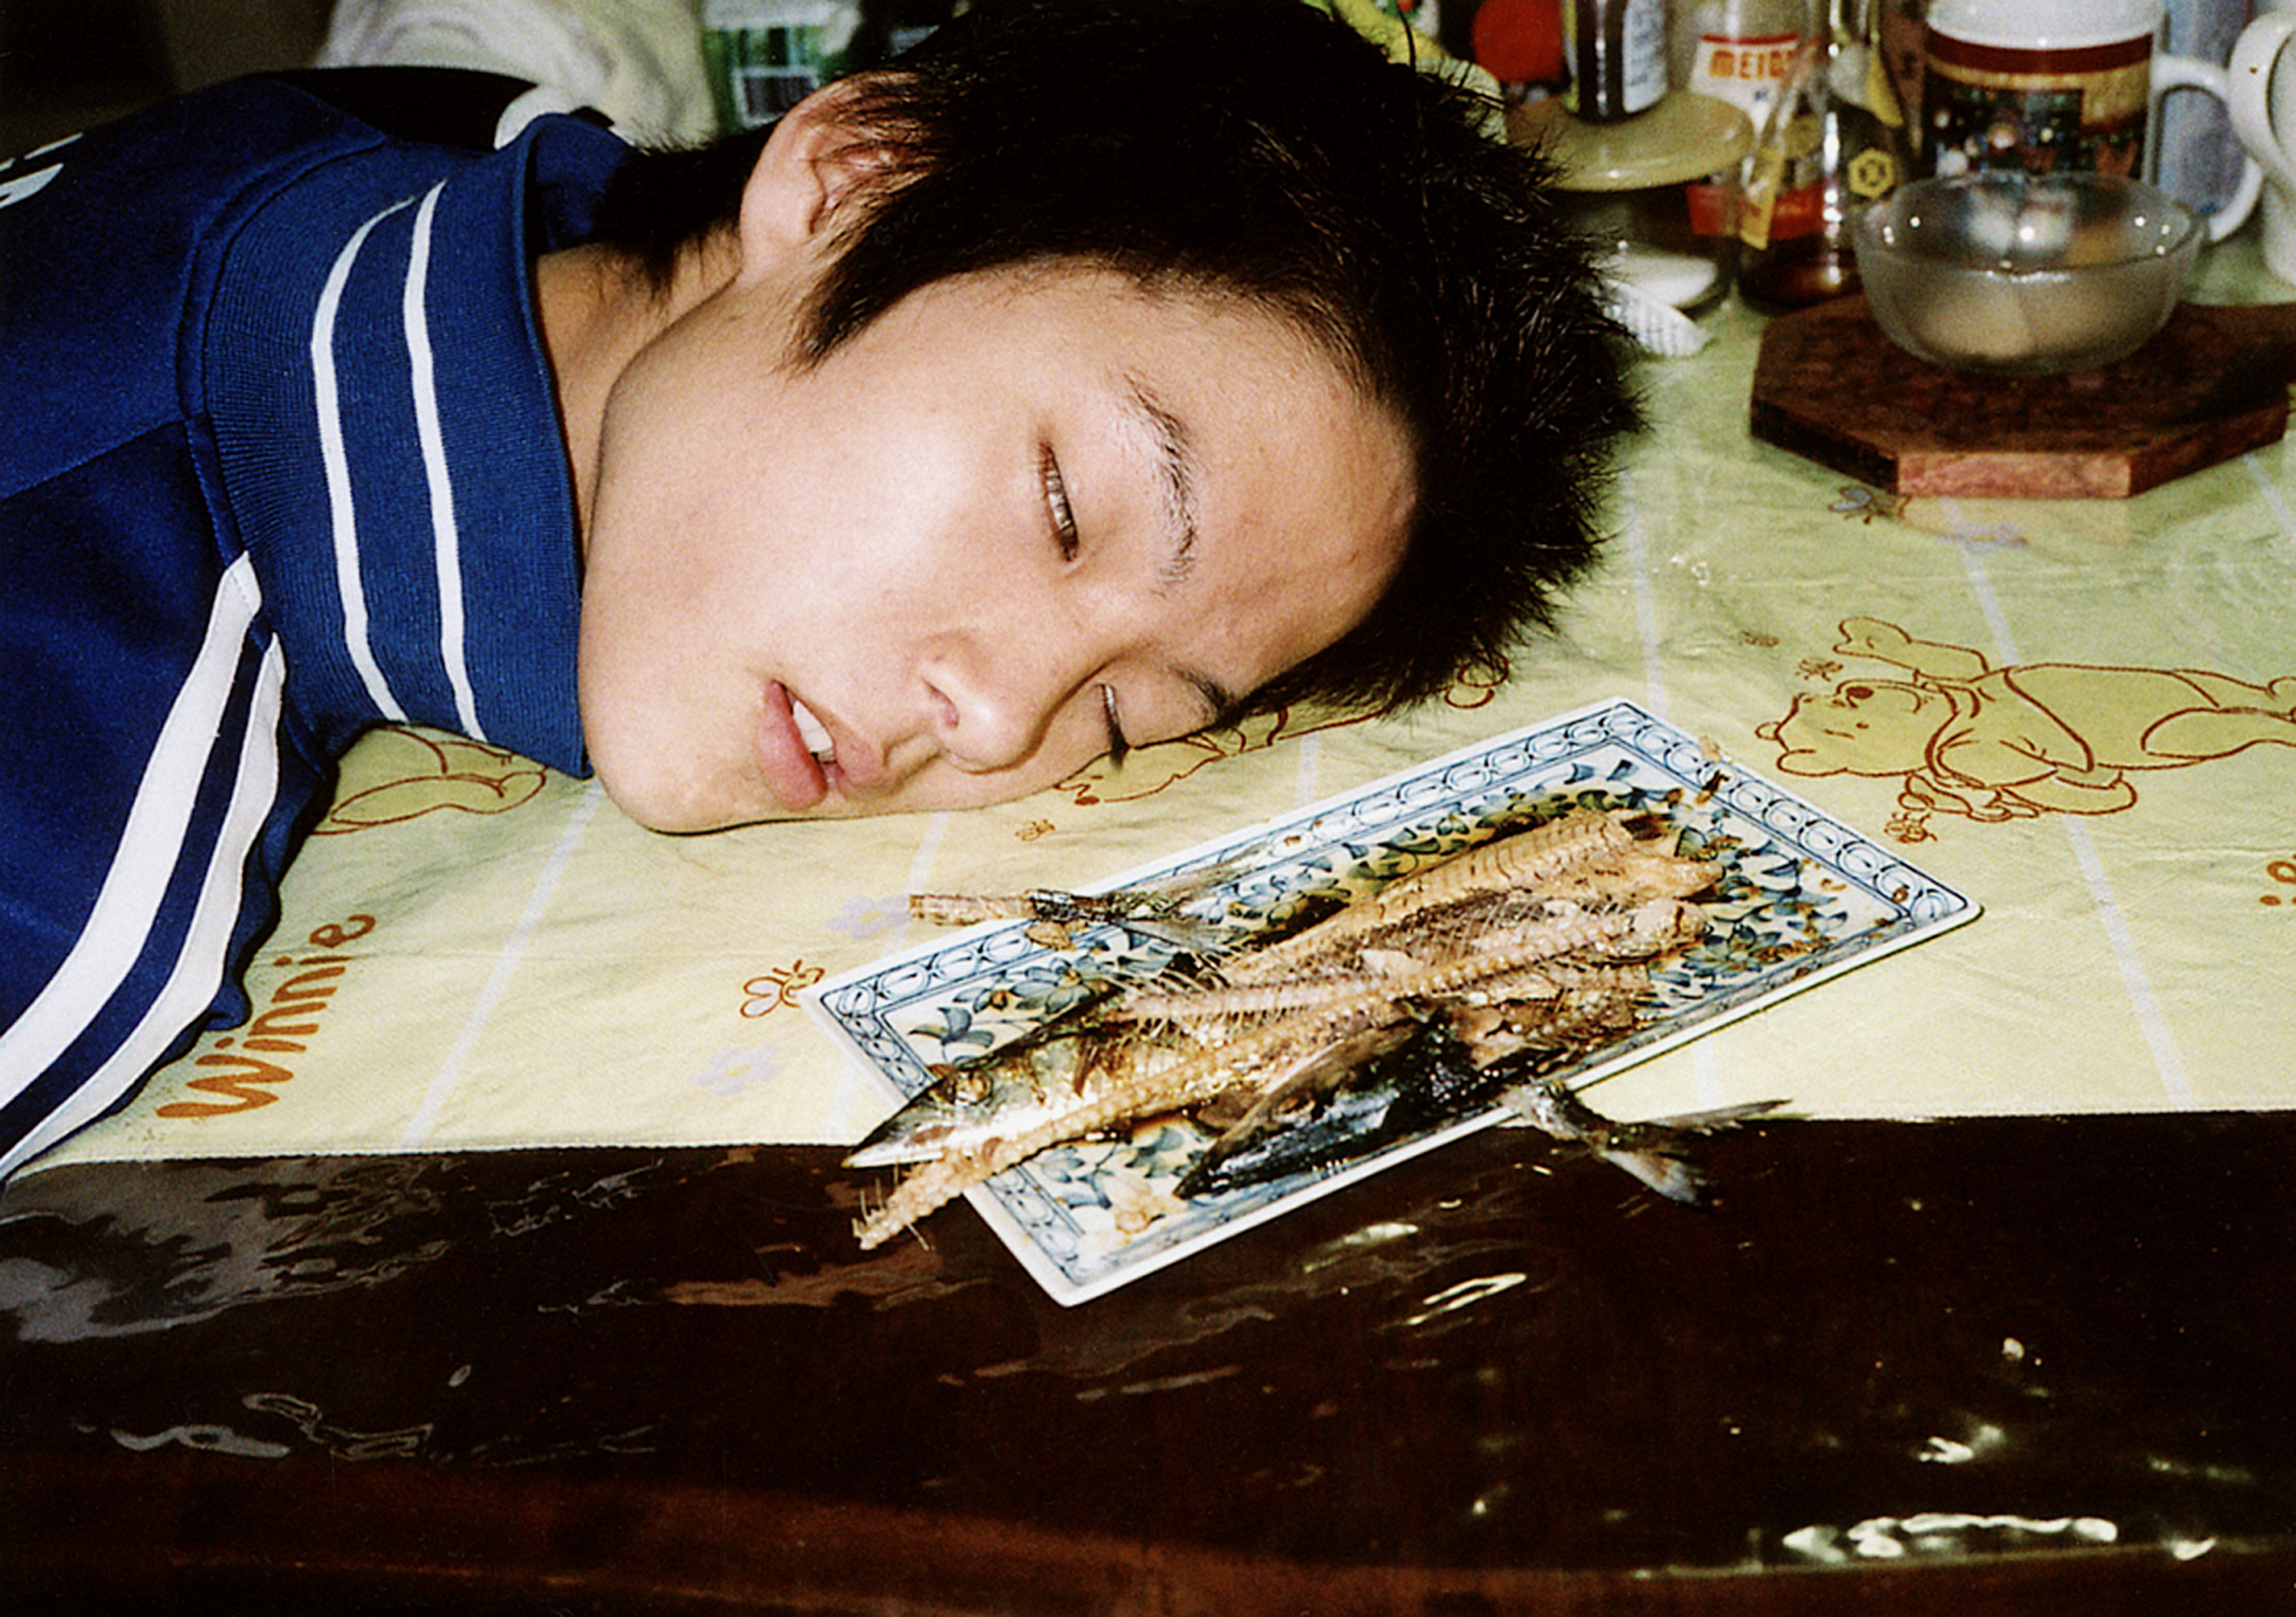 Motoyuki Daifu   Broiled Fish In The Table , 2010 c-print 20 x 24 inches 50.8 x 61 cm